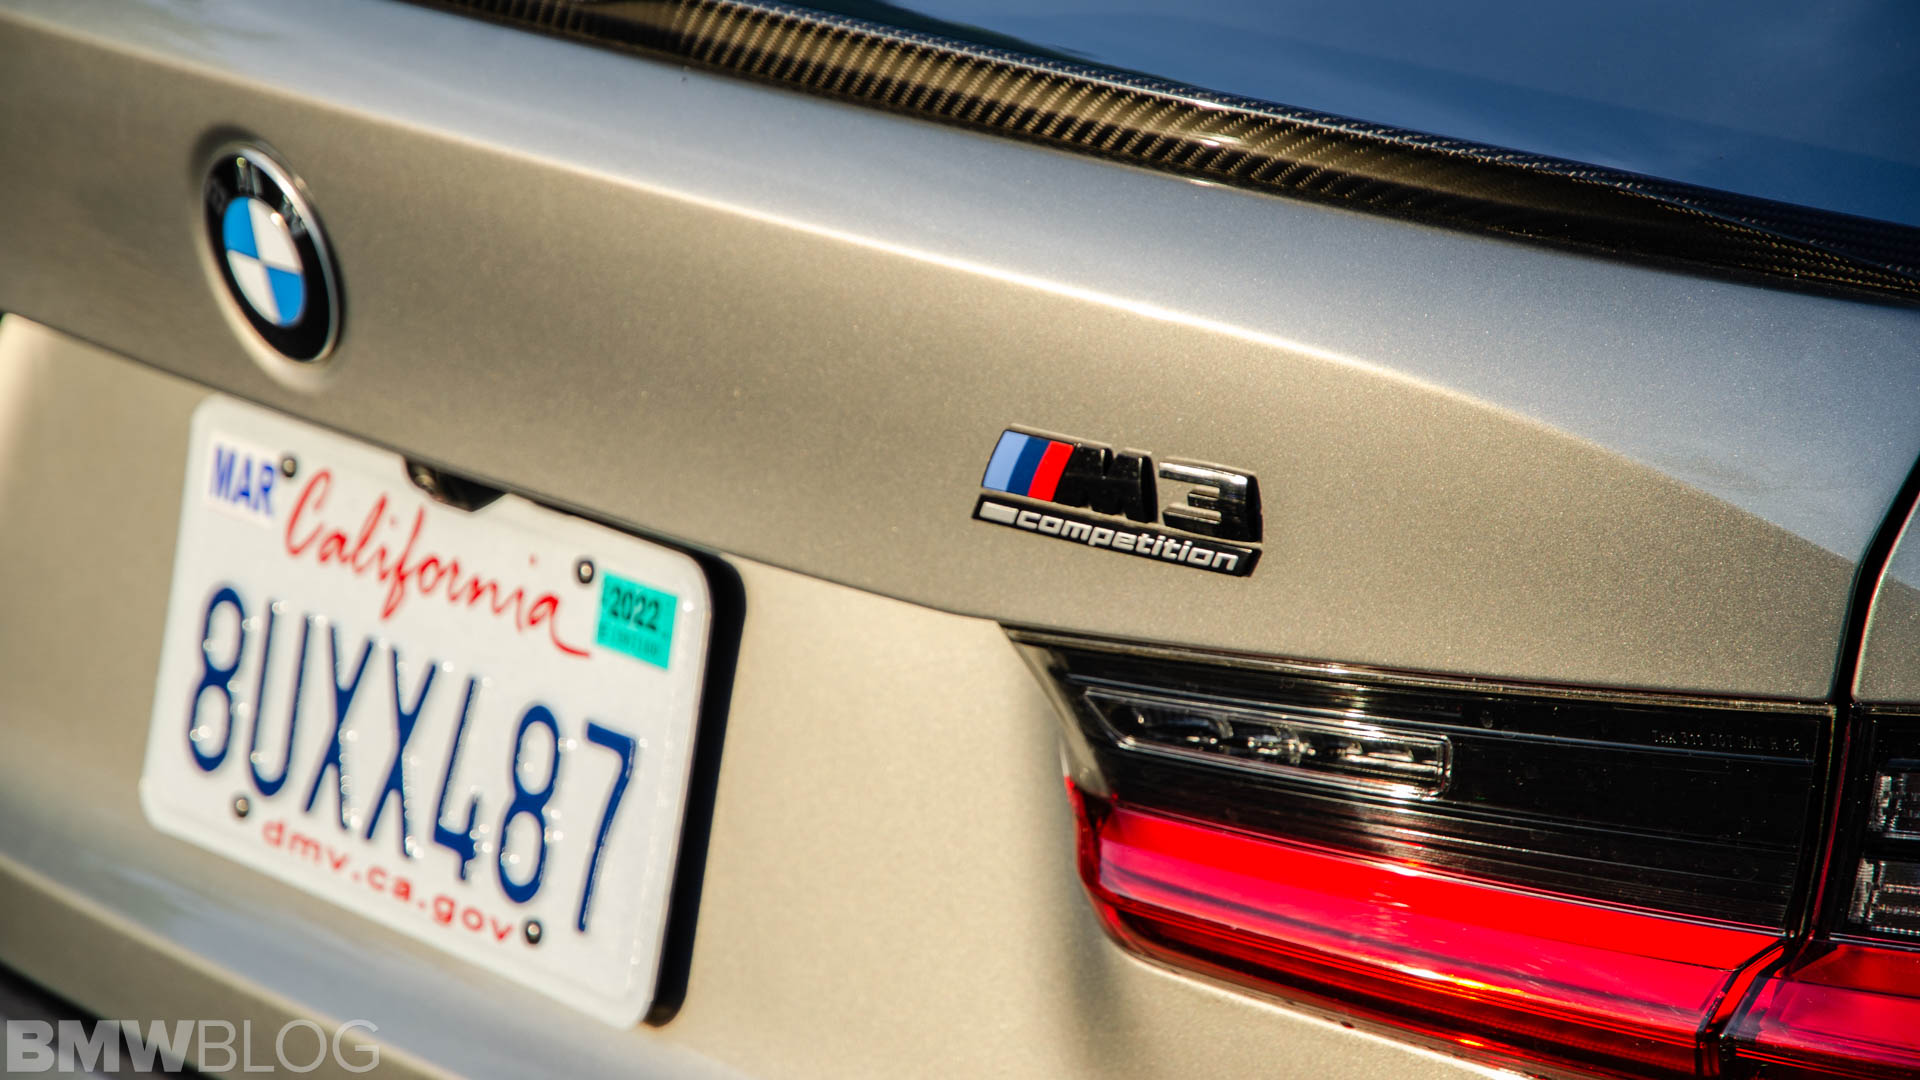 BMW M3 Competition Test Drive 13 of 40